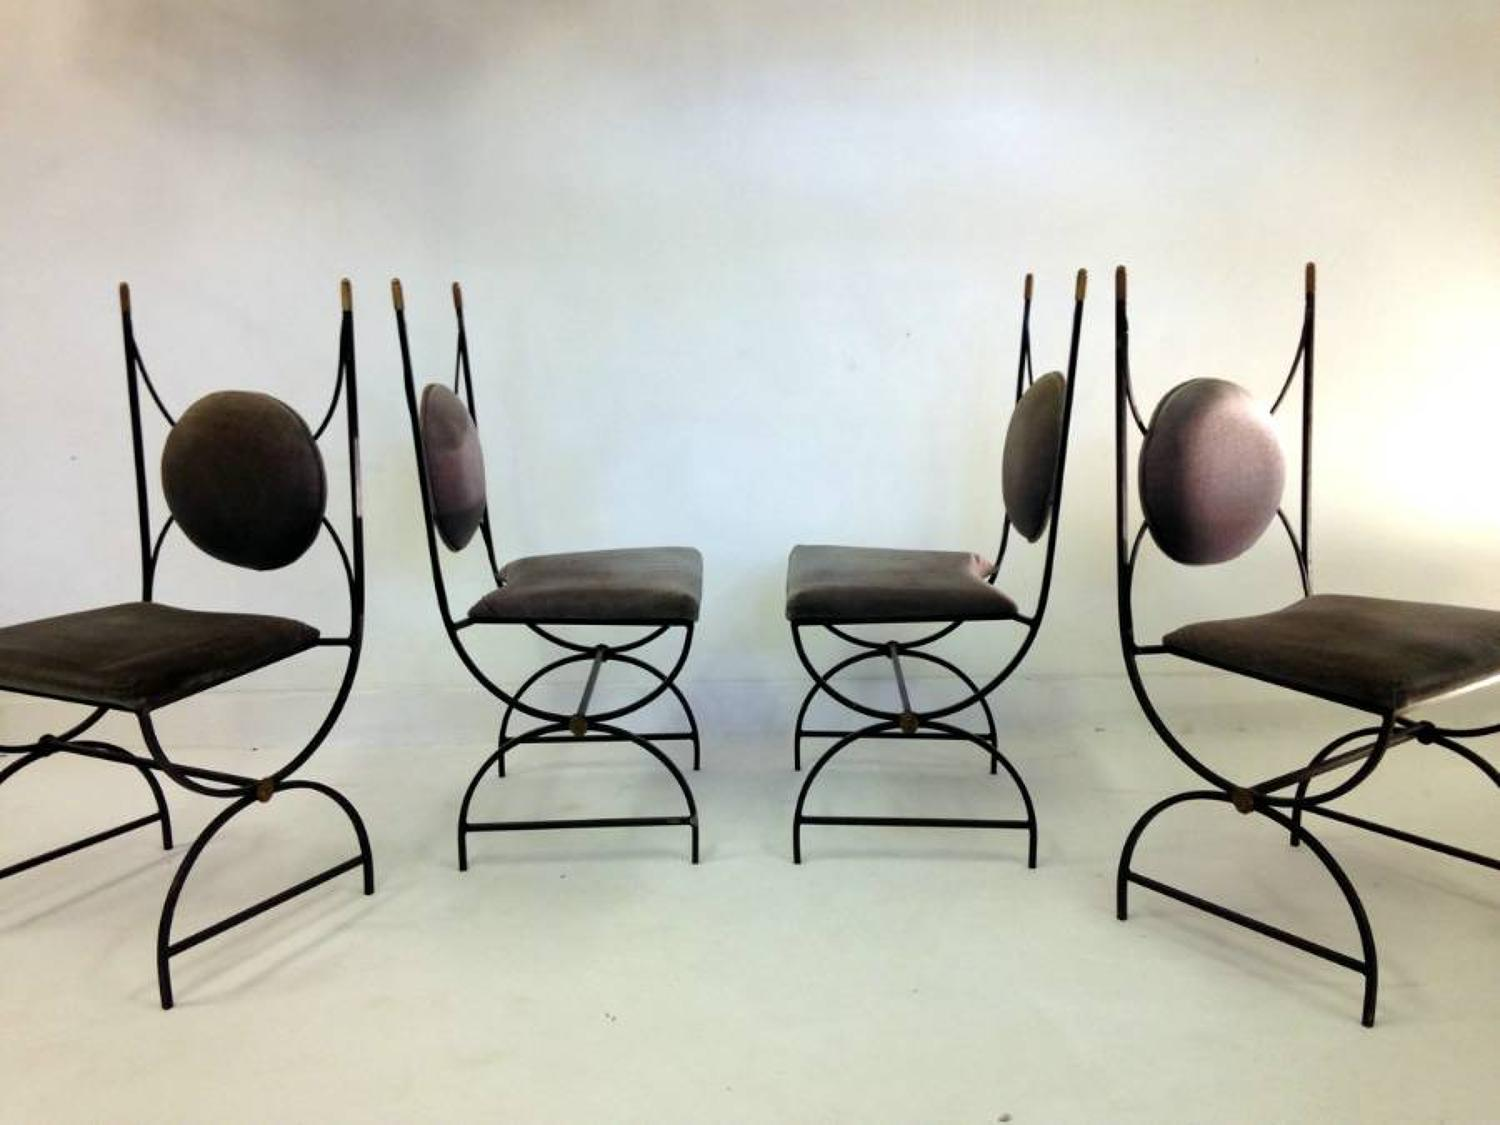 Four Neo-classical chairs by Roger Thibier